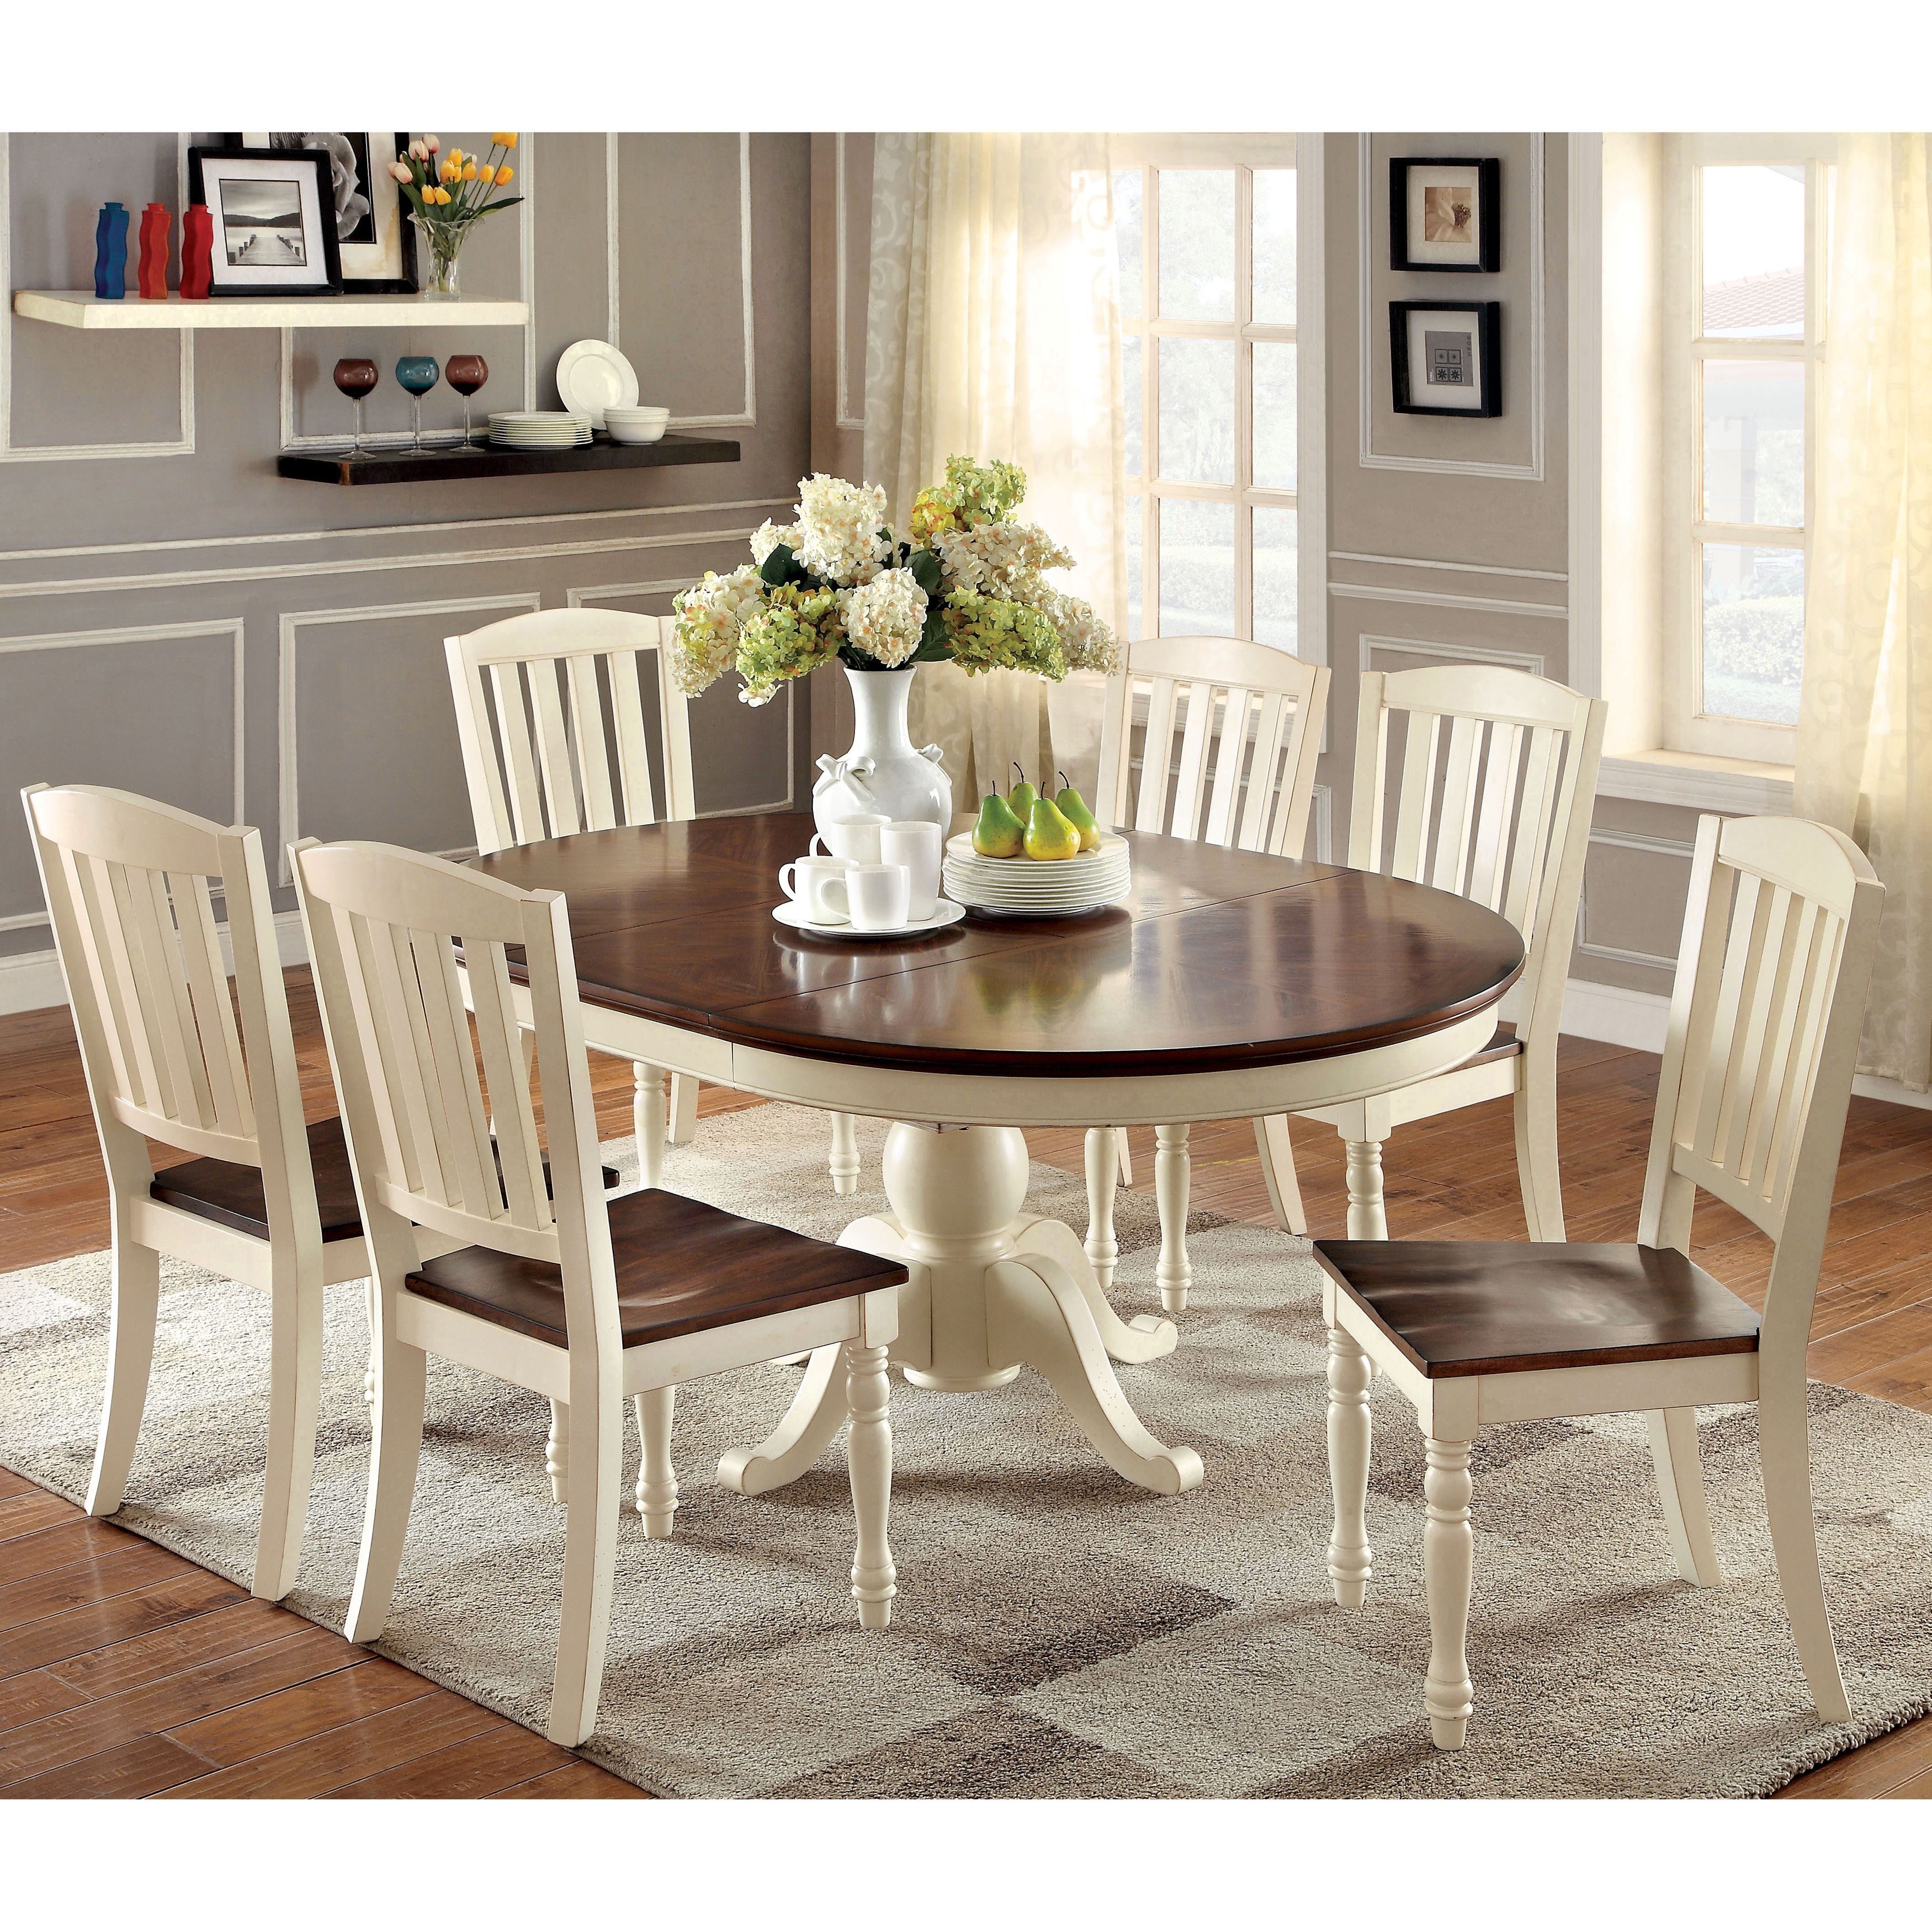 two tone kitchen table Furniture of America Bethannie Cottage Style 2 Tone Oval Dining Table by Furniture of America